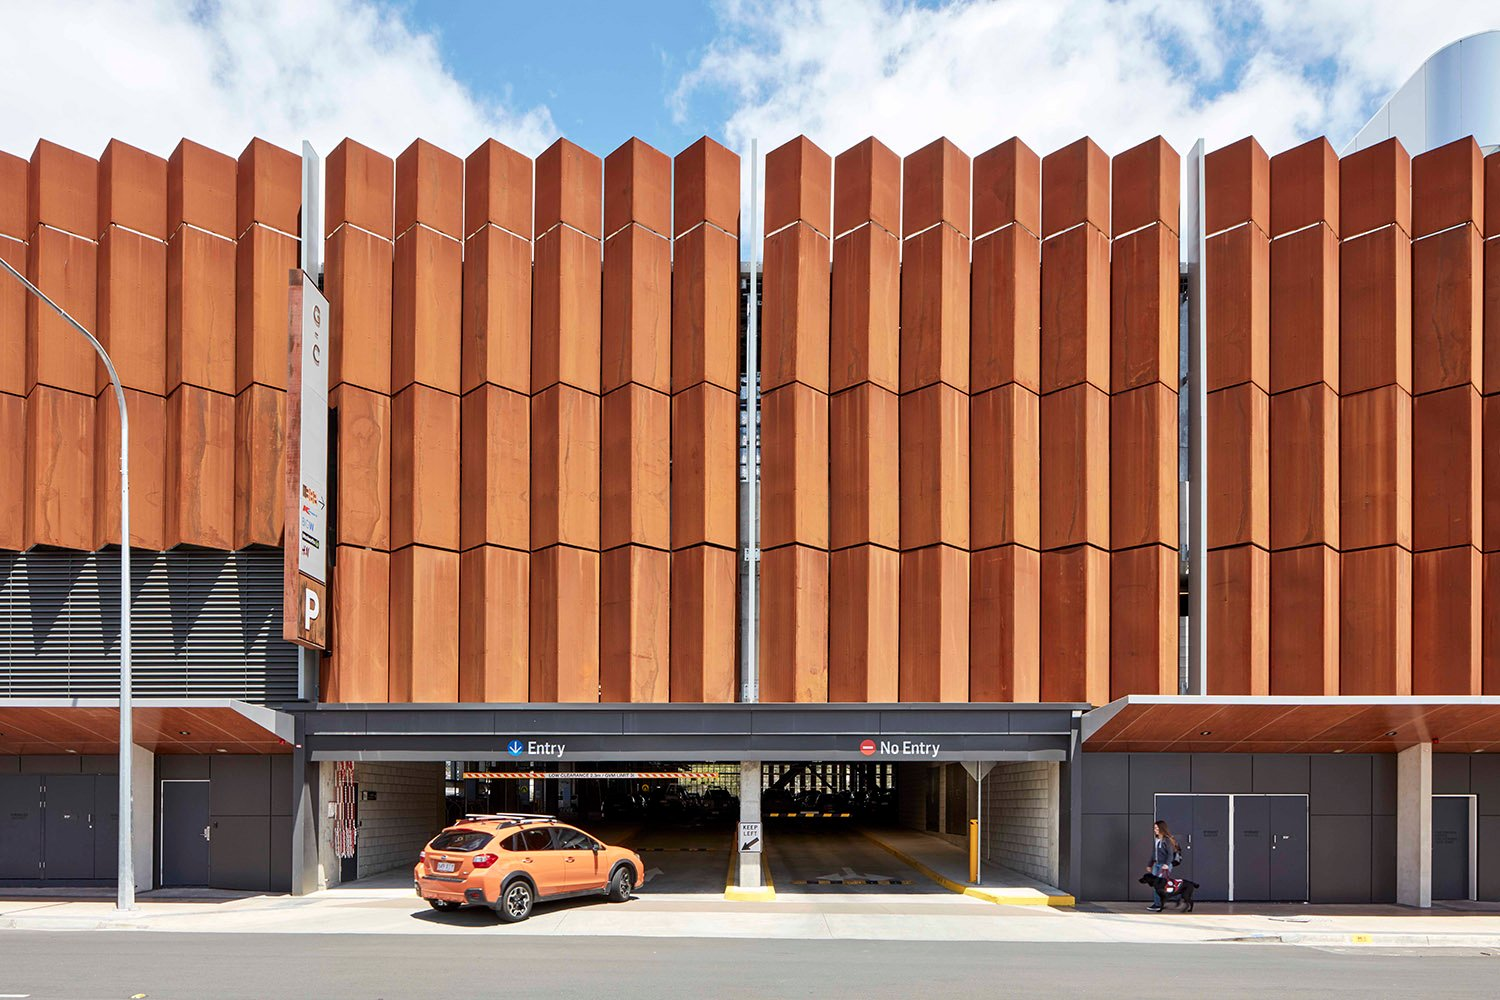 The carpark is wrapped in folded weathered steel allowing natural ventilation and recalling the robust local vernacular. Christopher Frederick Jones